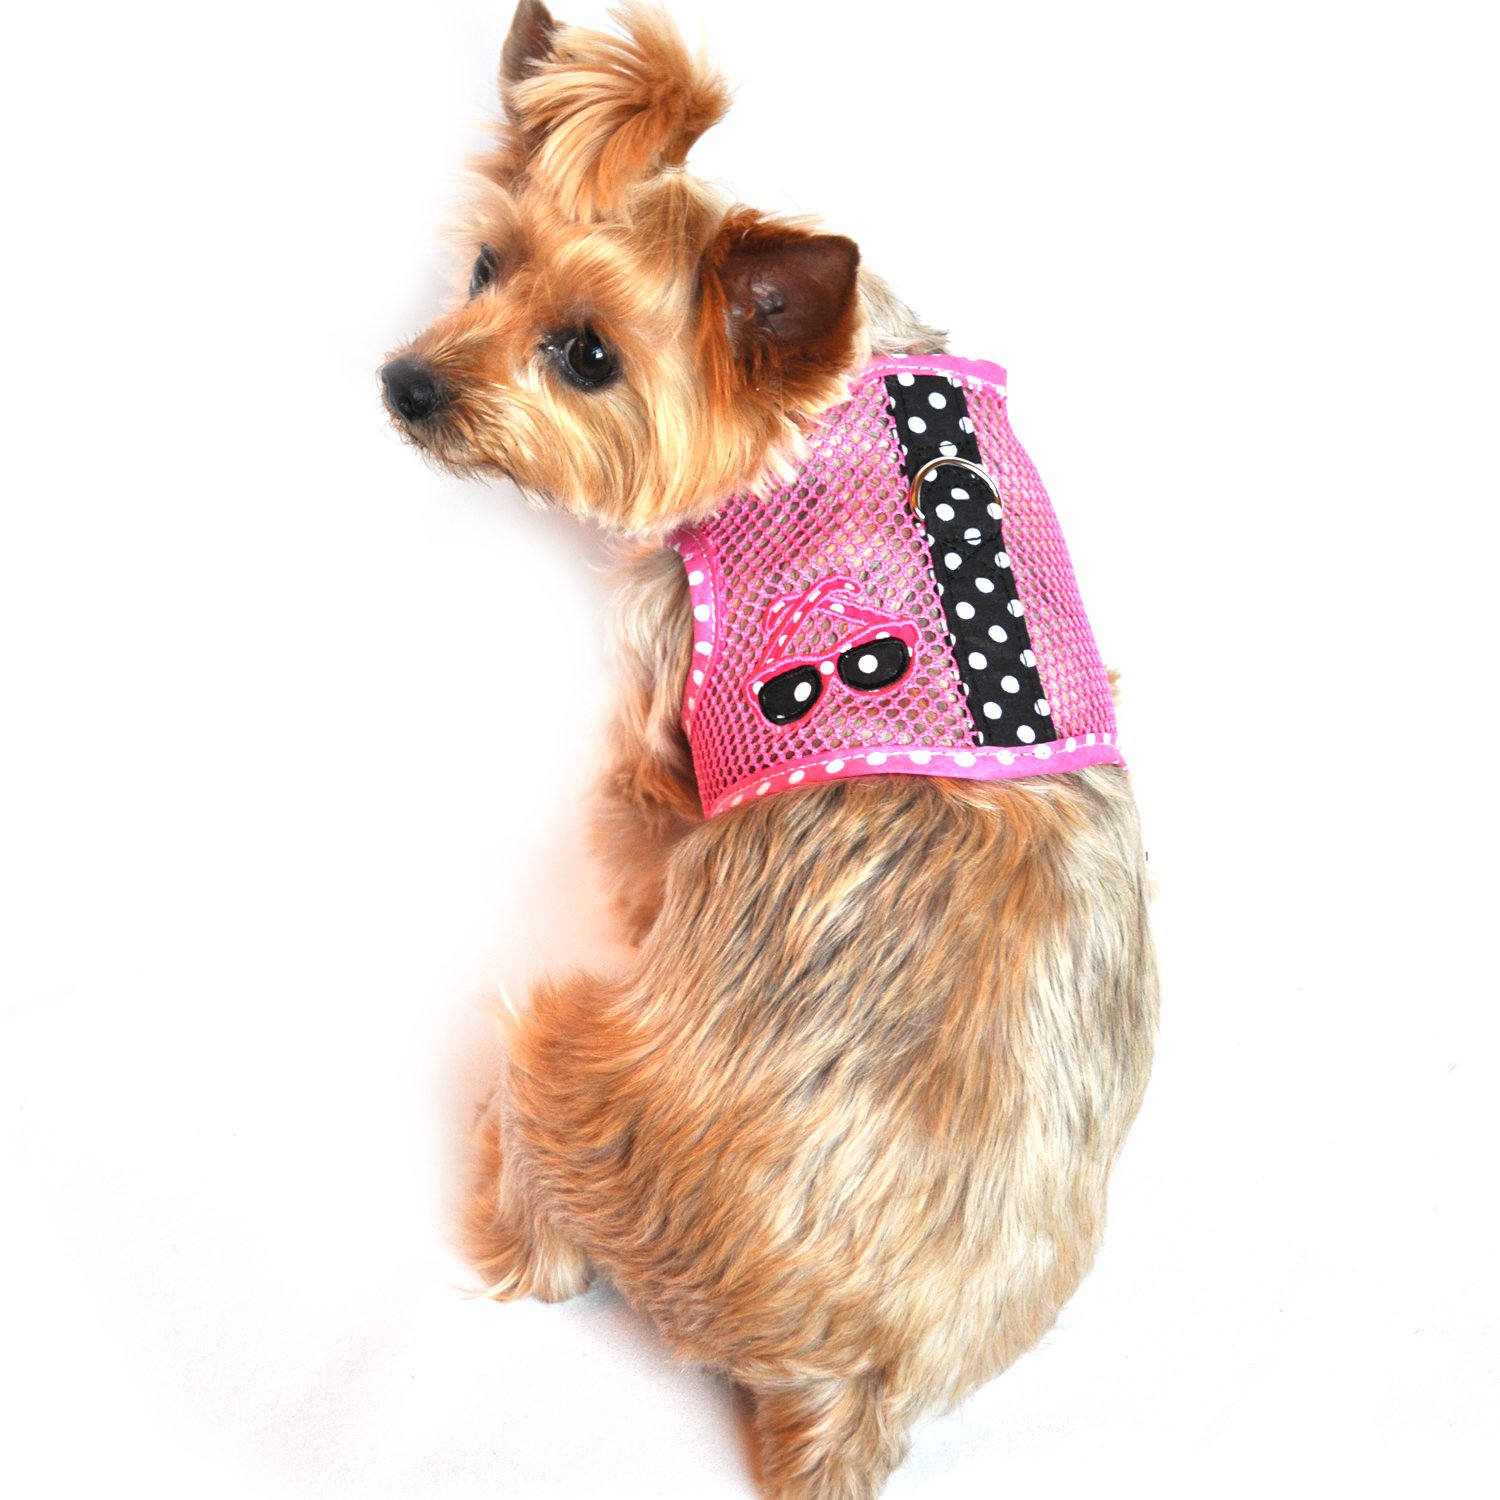 Doggie Design Cool Mesh Dog Harness Under the Sea Collection - Sunglasses Pink and Black (S)